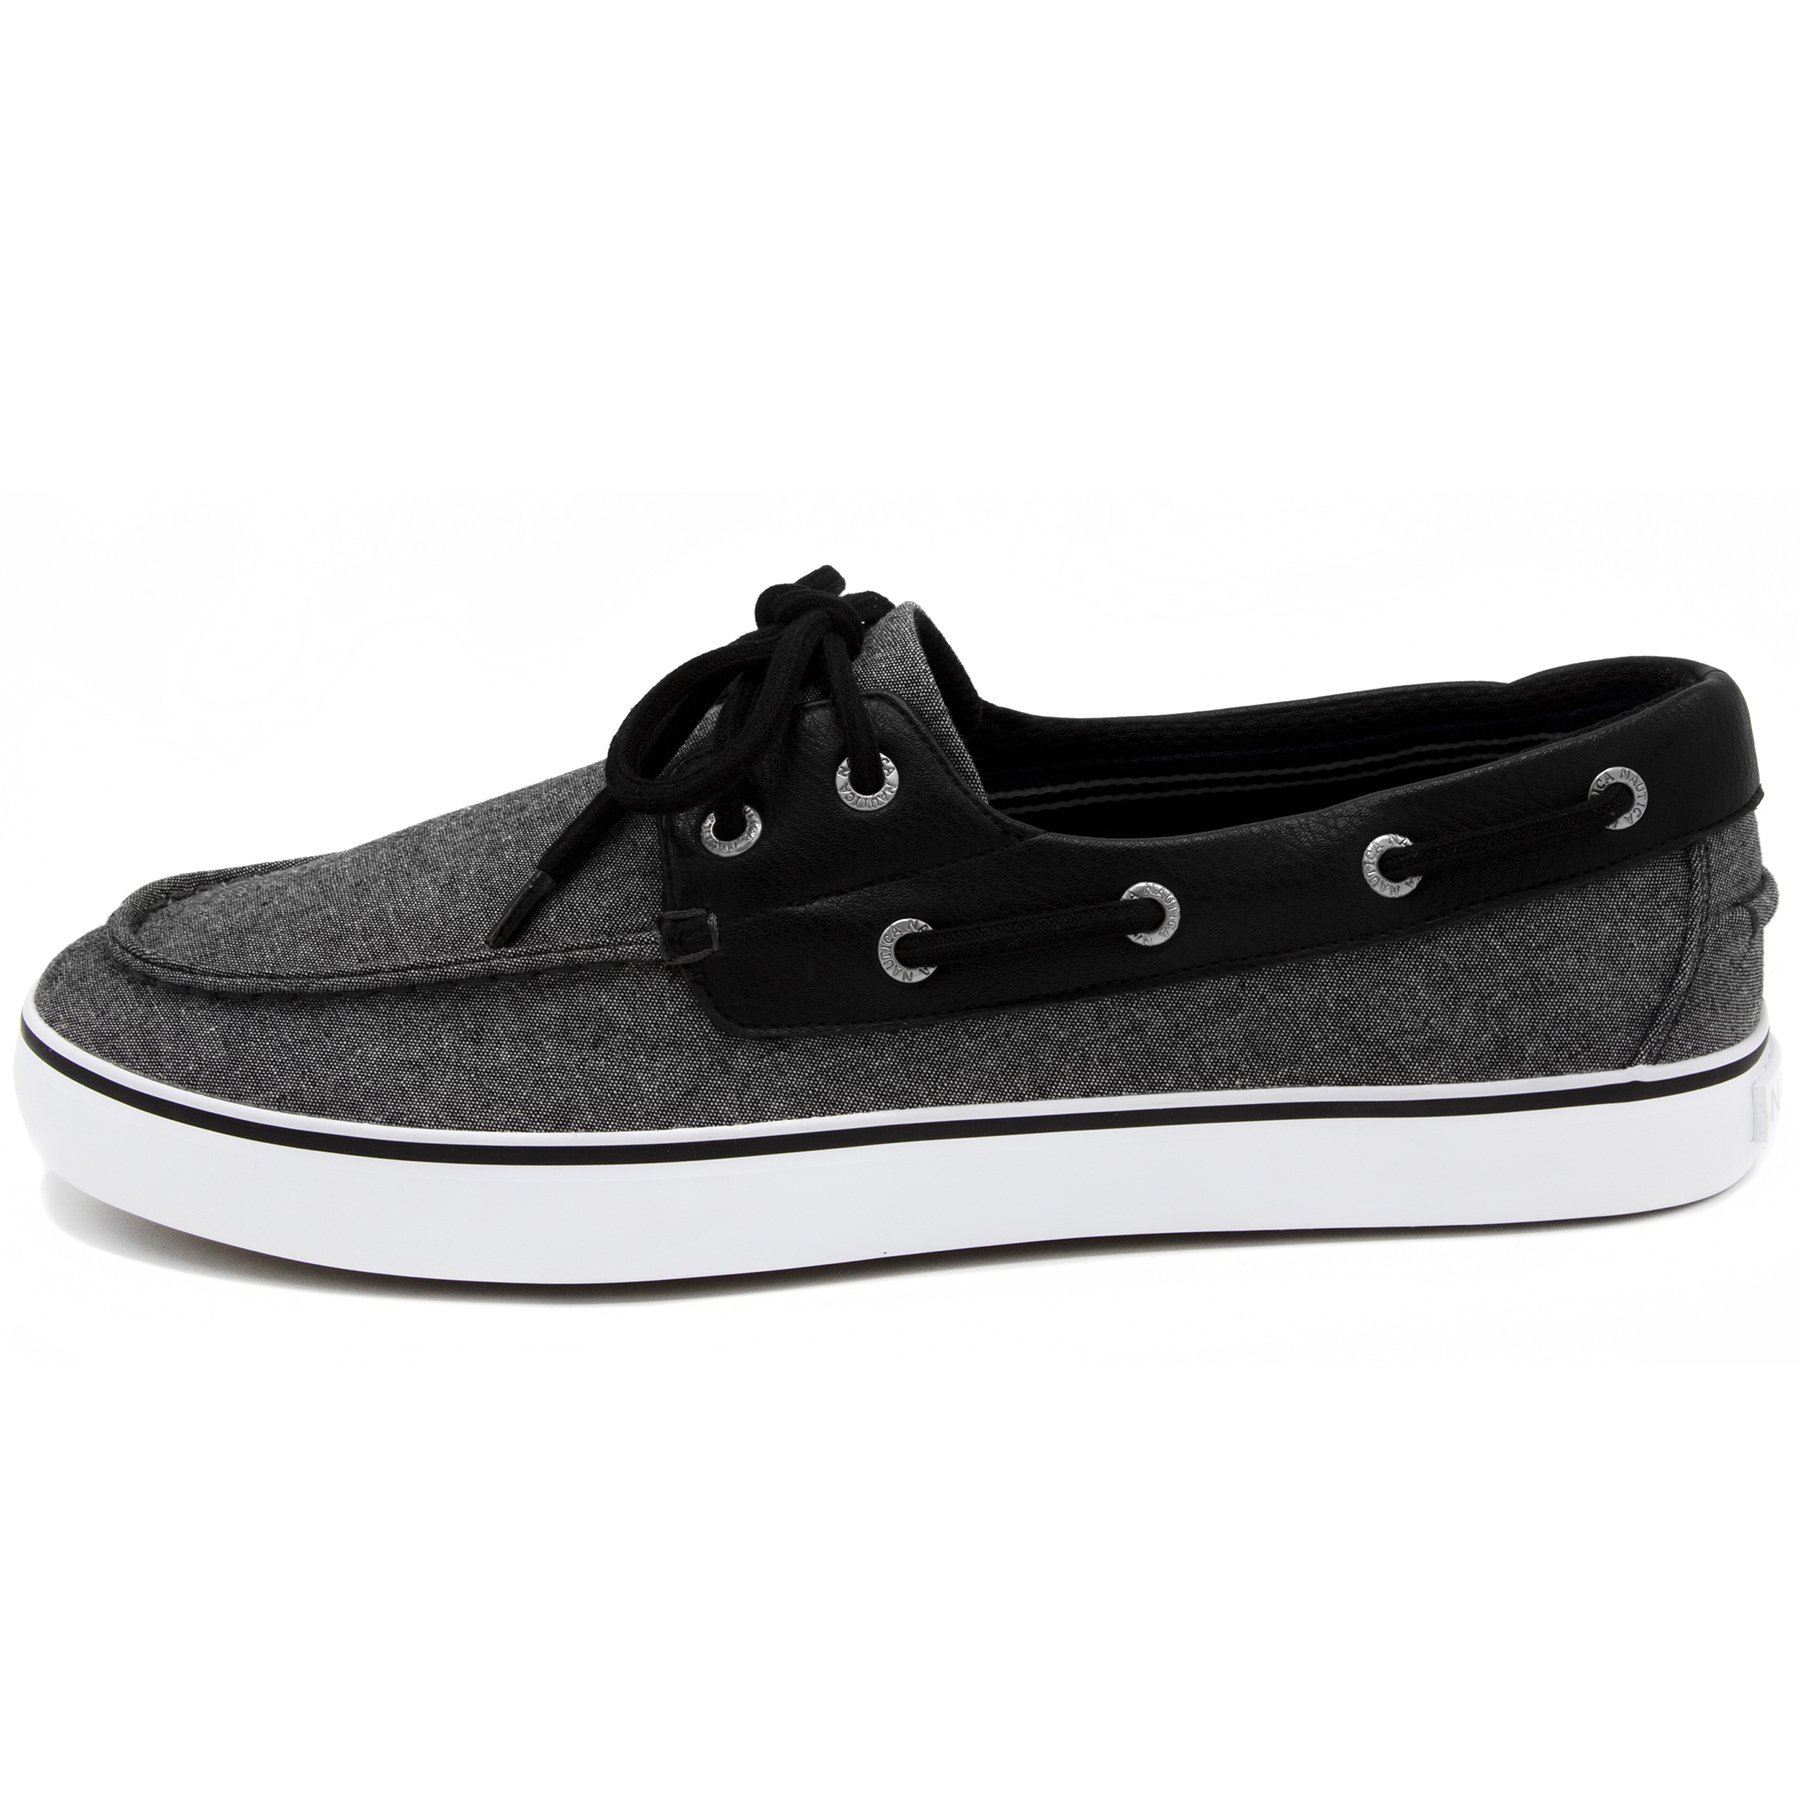 Nautica Men's Galley Lace-Up Boat Shoe,Two-Eyelet Casual Loafer, Fashion Sneaker-Black Chambray-12 by Nautica (Image #2)